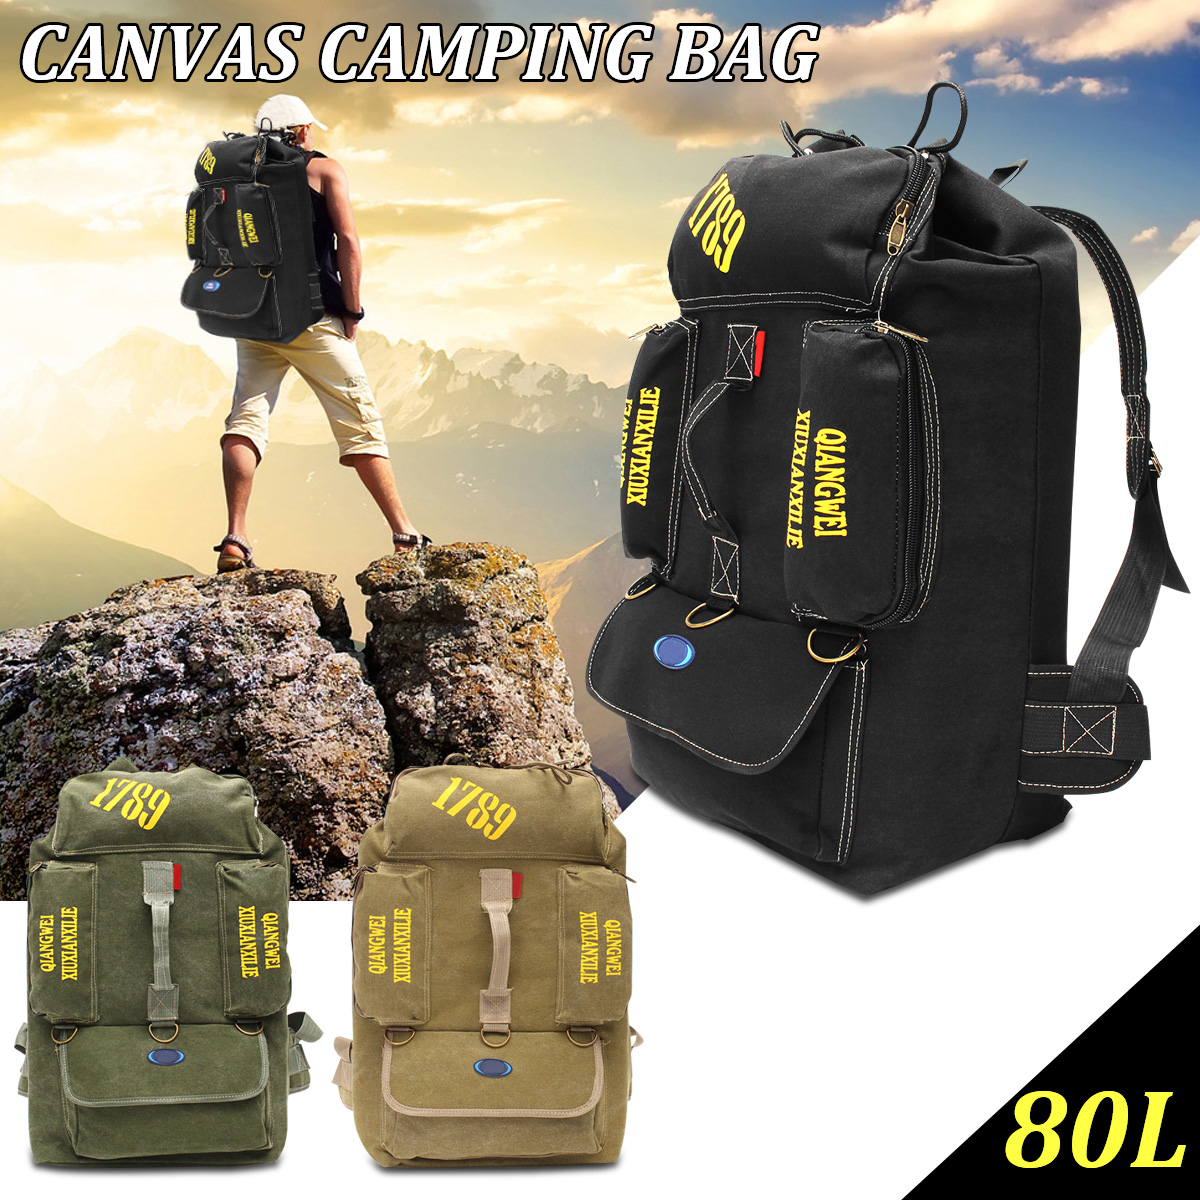 80L Large Capacity Outdoor Sport Bags Camping Hiking Canvas Backpack Mountaineering Travel Rucksack Army Military Trekking Bag 80l outdoor backpack large capacity camping camouflage military rucksack men women hiking backpack army tactical bag